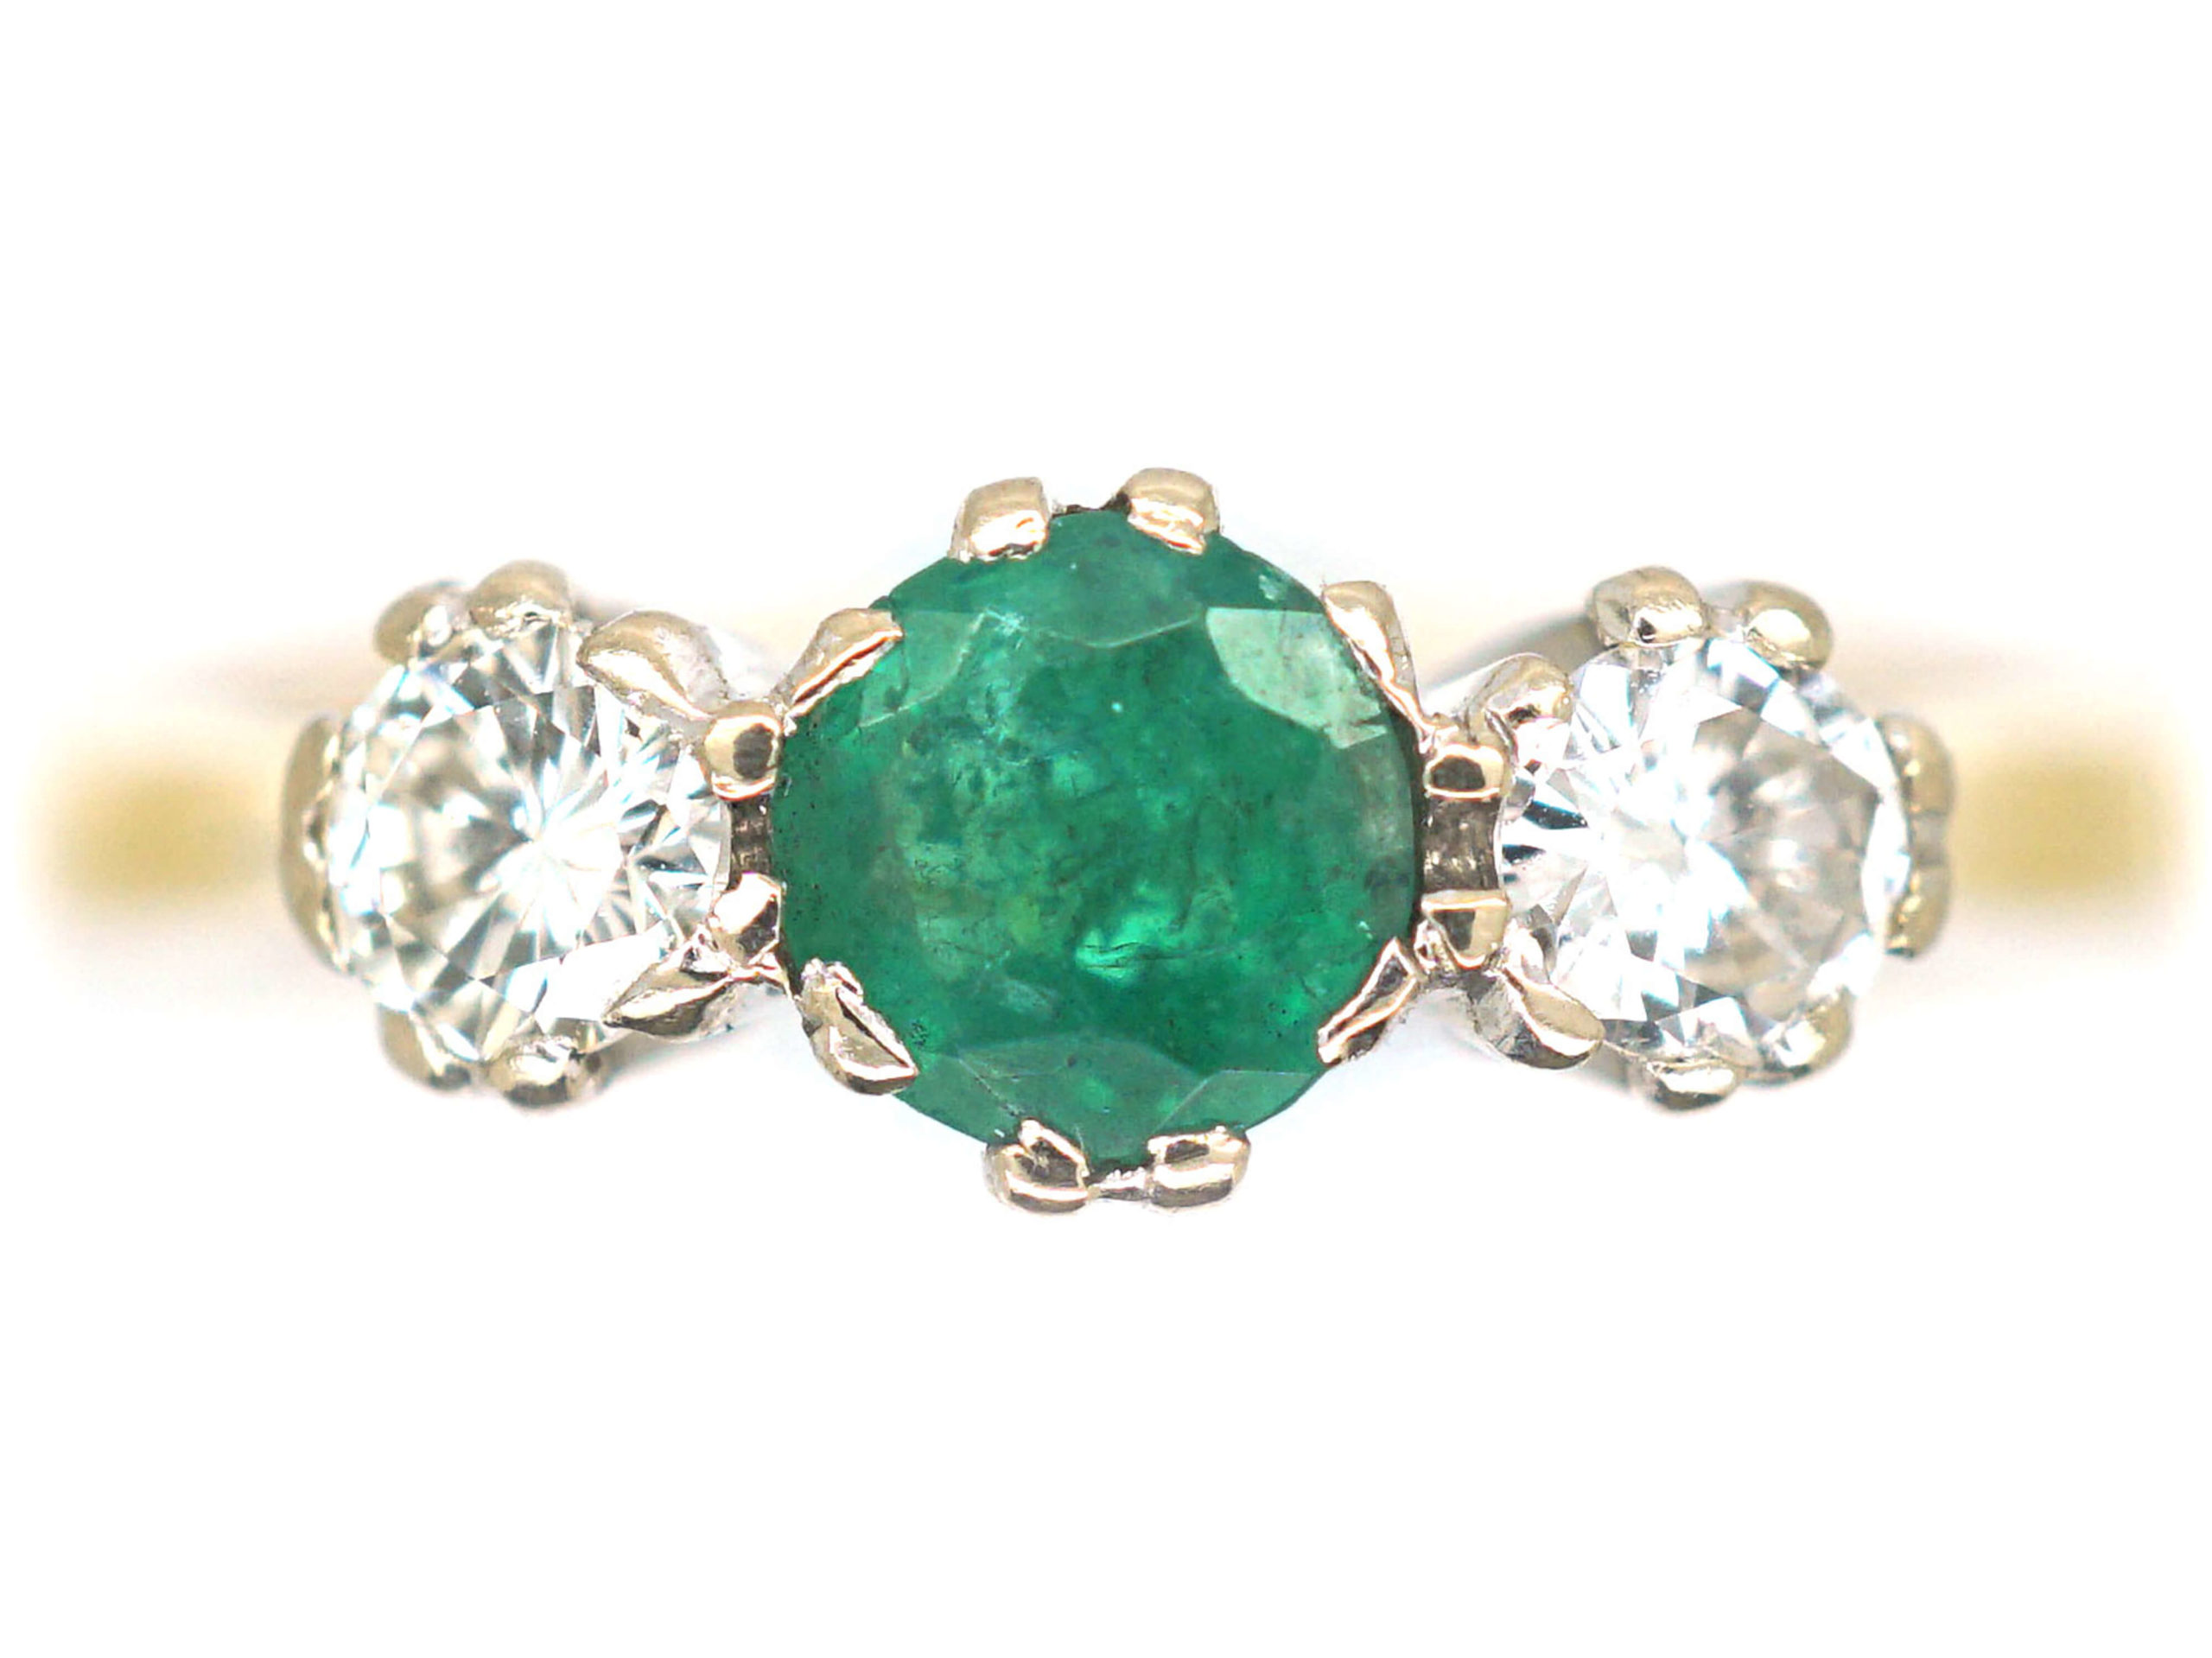 18ct Gold, Emerald and Diamond Three Stone Ring by Cropp & Farr